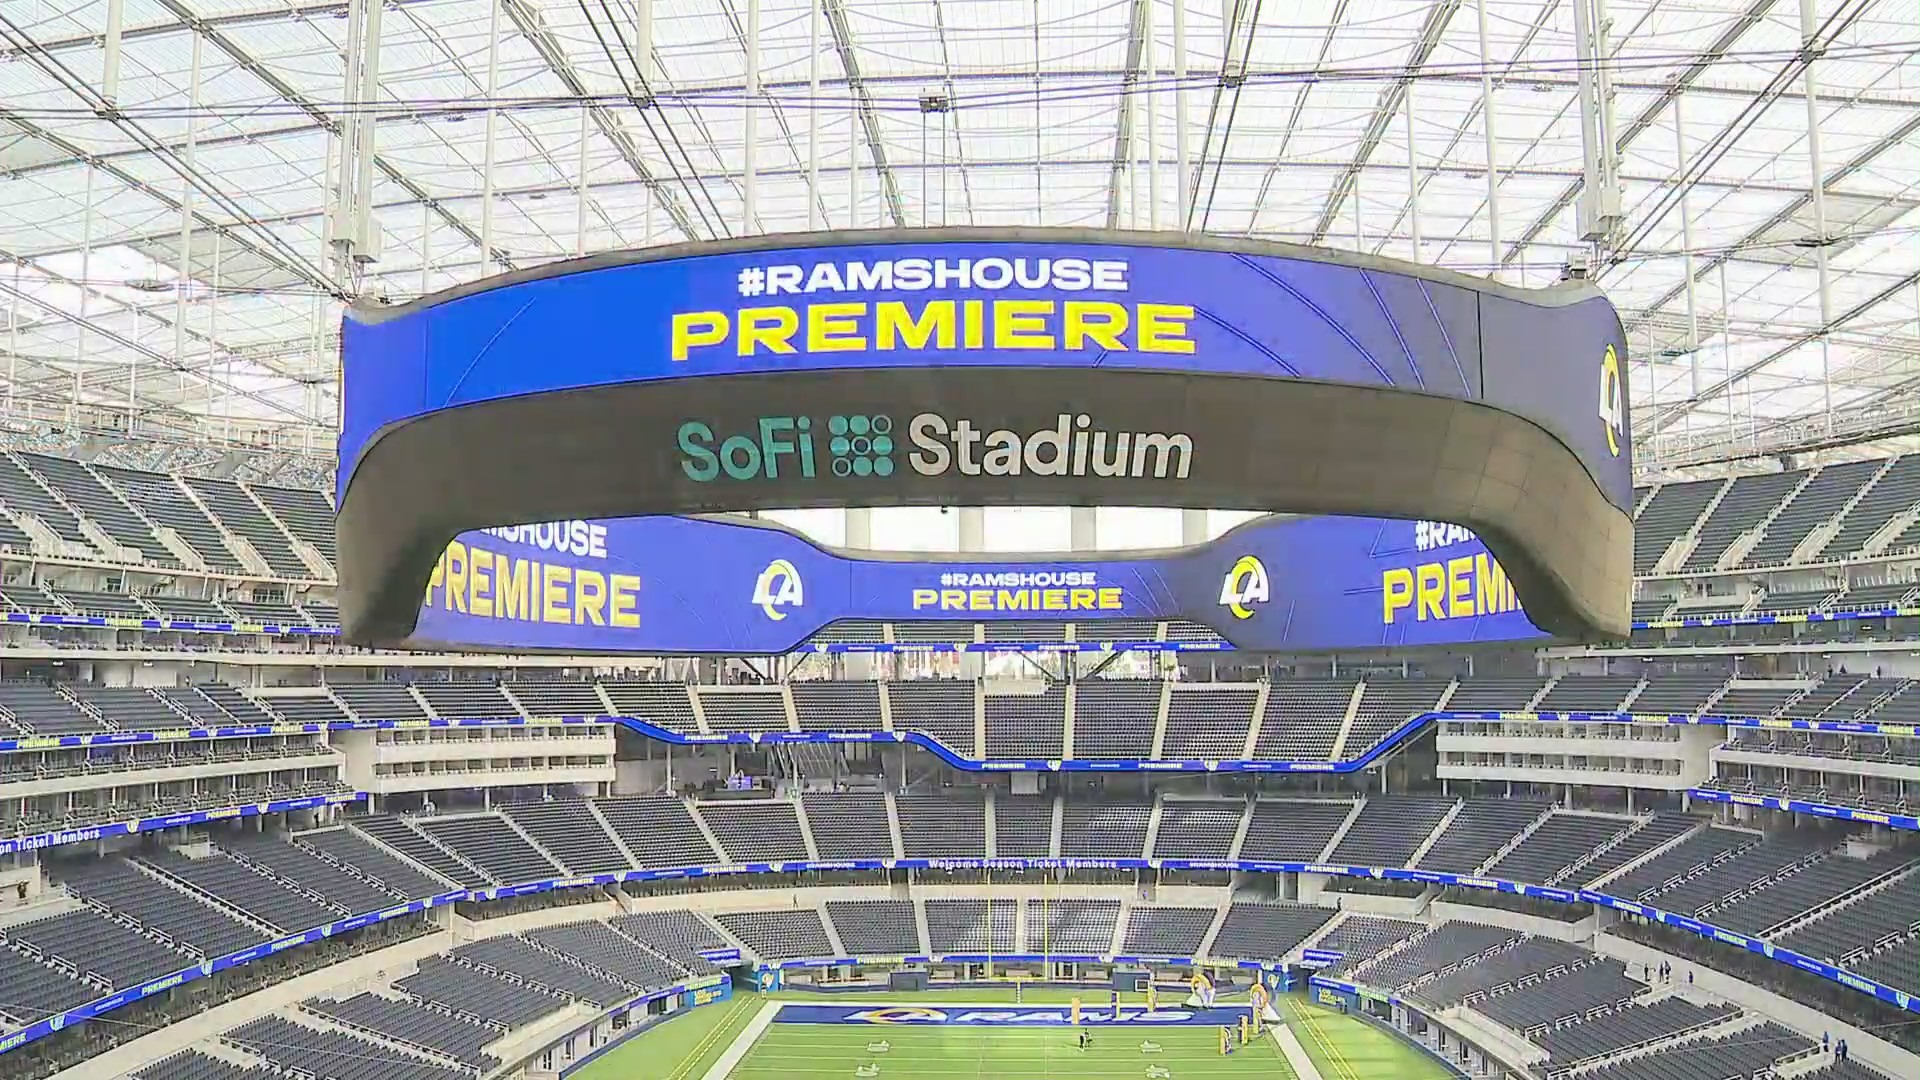 SoFi Stadium in Inglewood is seen during the Los Angeles Rams preview event on April 17, 2021. (KTLA)